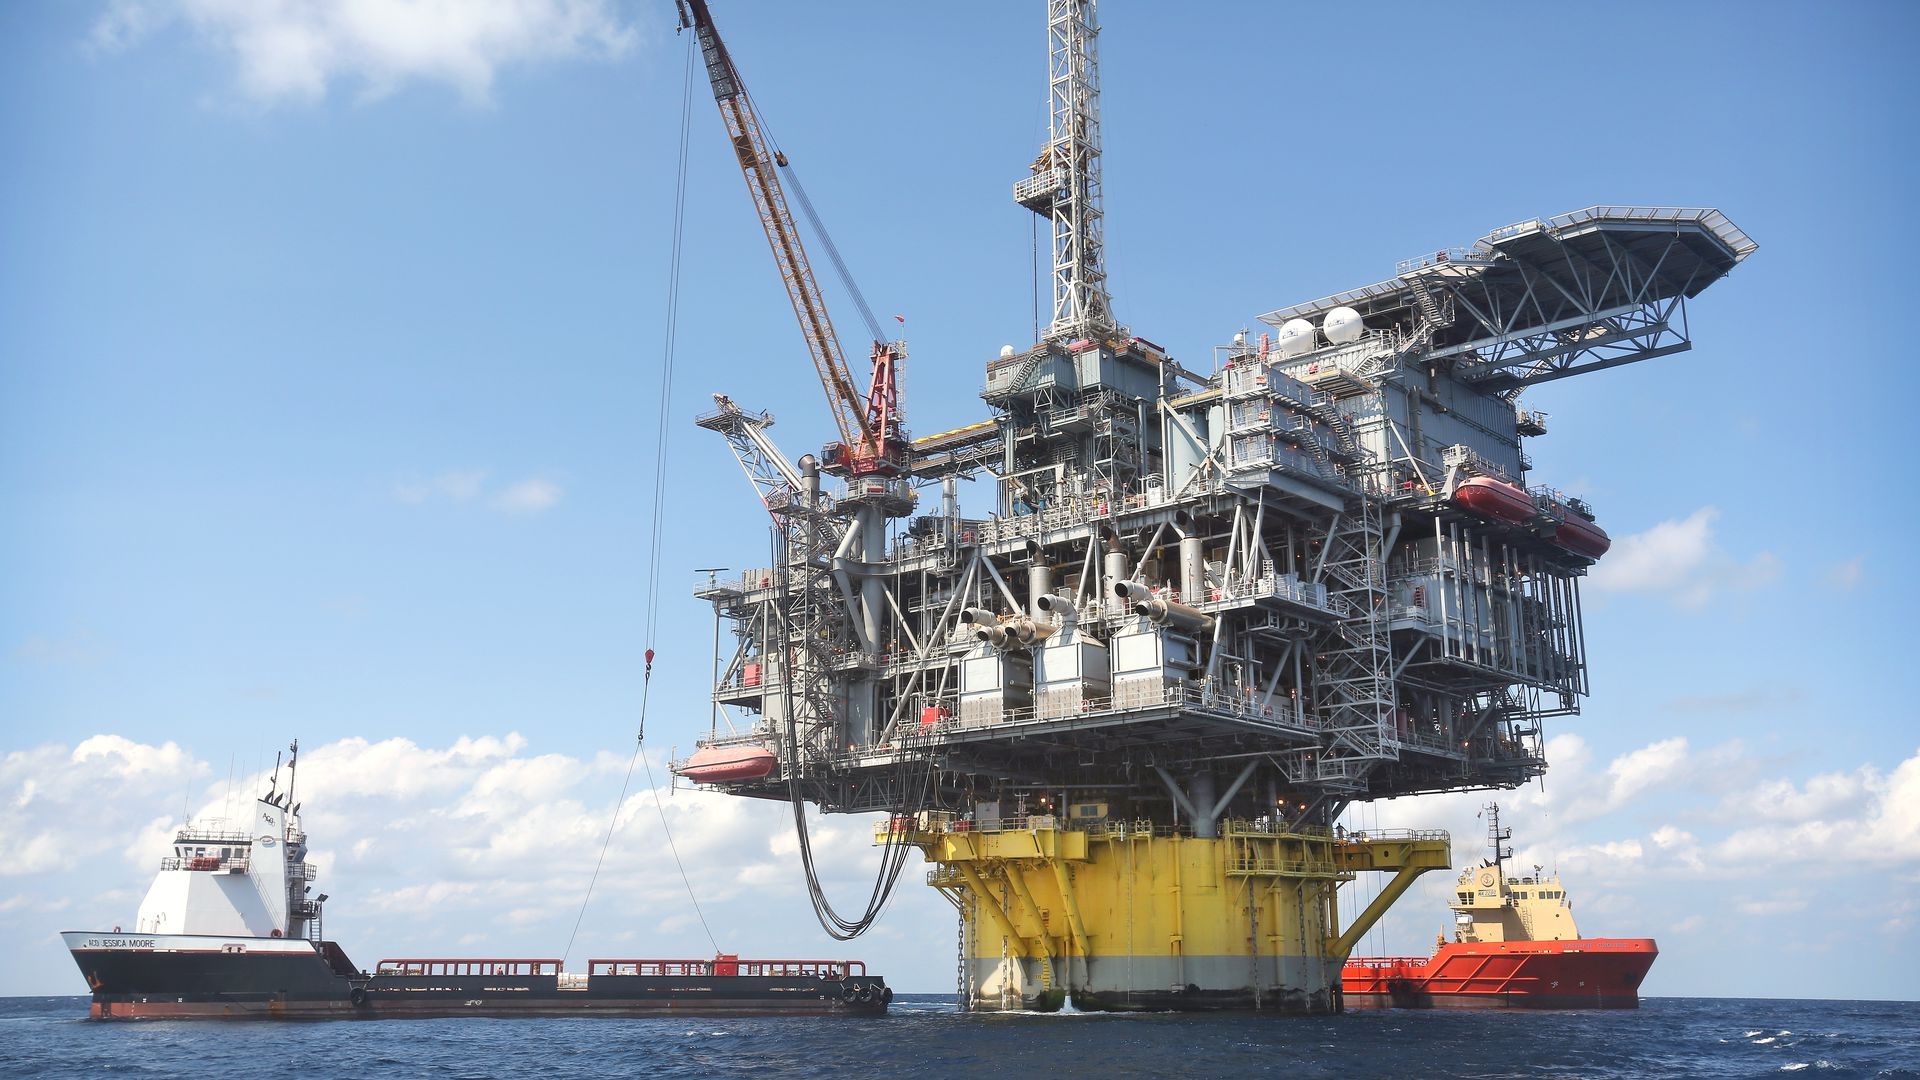 Shell's Perdido offshore drilling and production platform in the Gulf of Mexico.